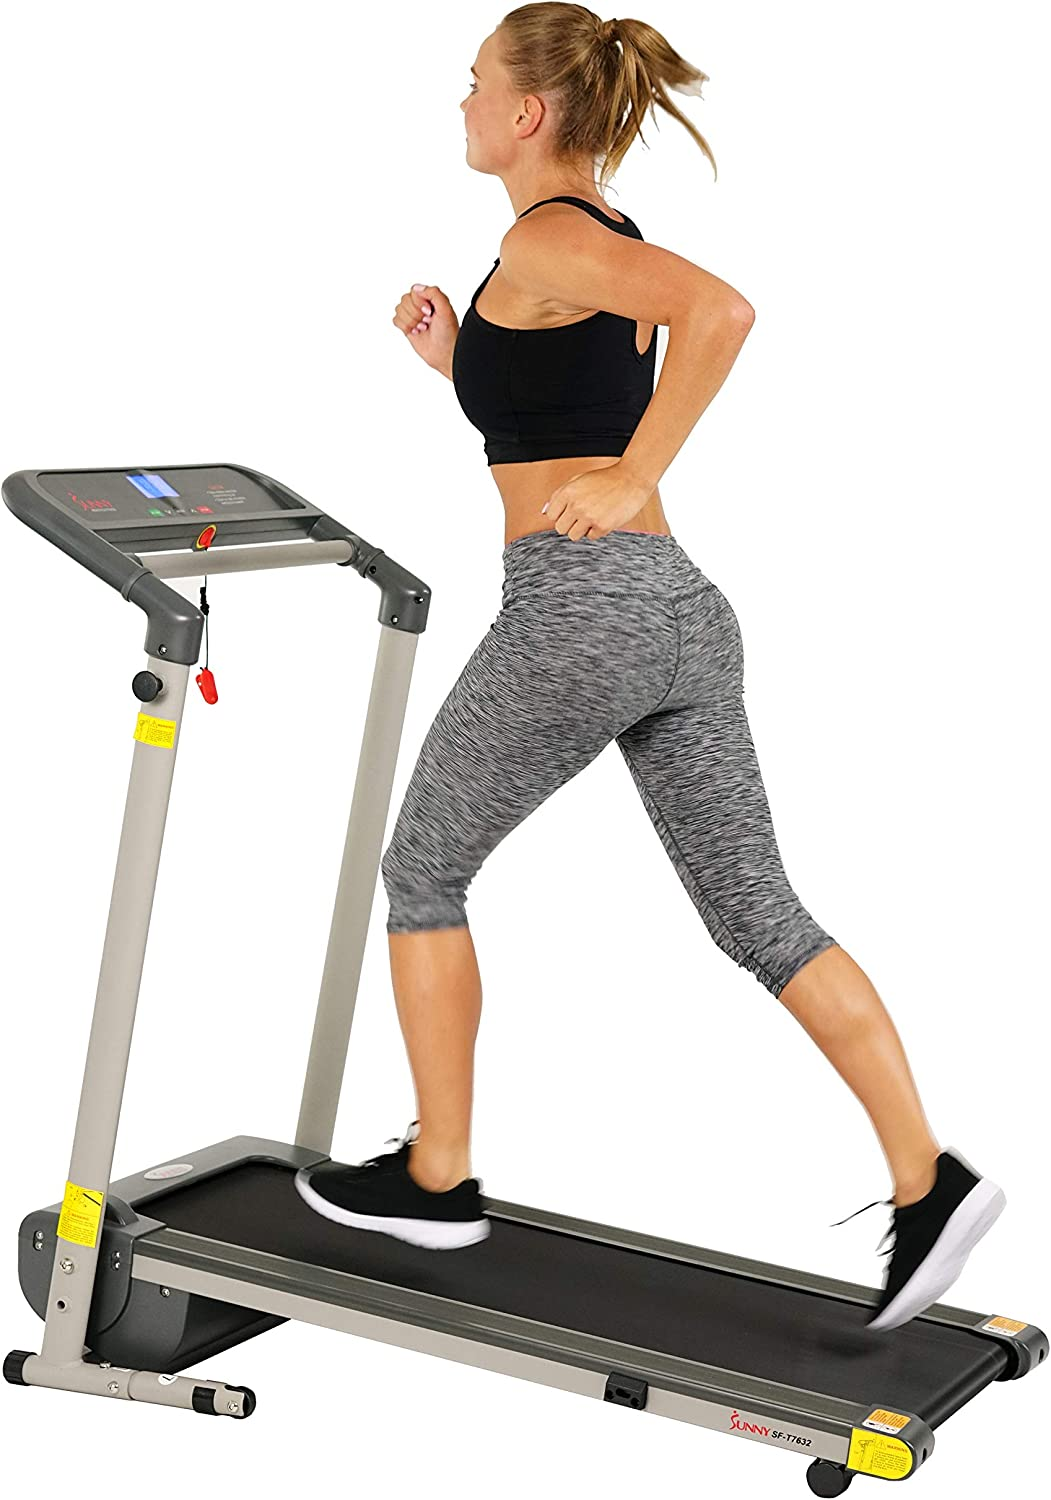 Sunny Health & Fitness Folding Compact Motorized Treadmill - LCD Display, Shock Absorption and 220 LB Max Weight - SF-T7632,Gray